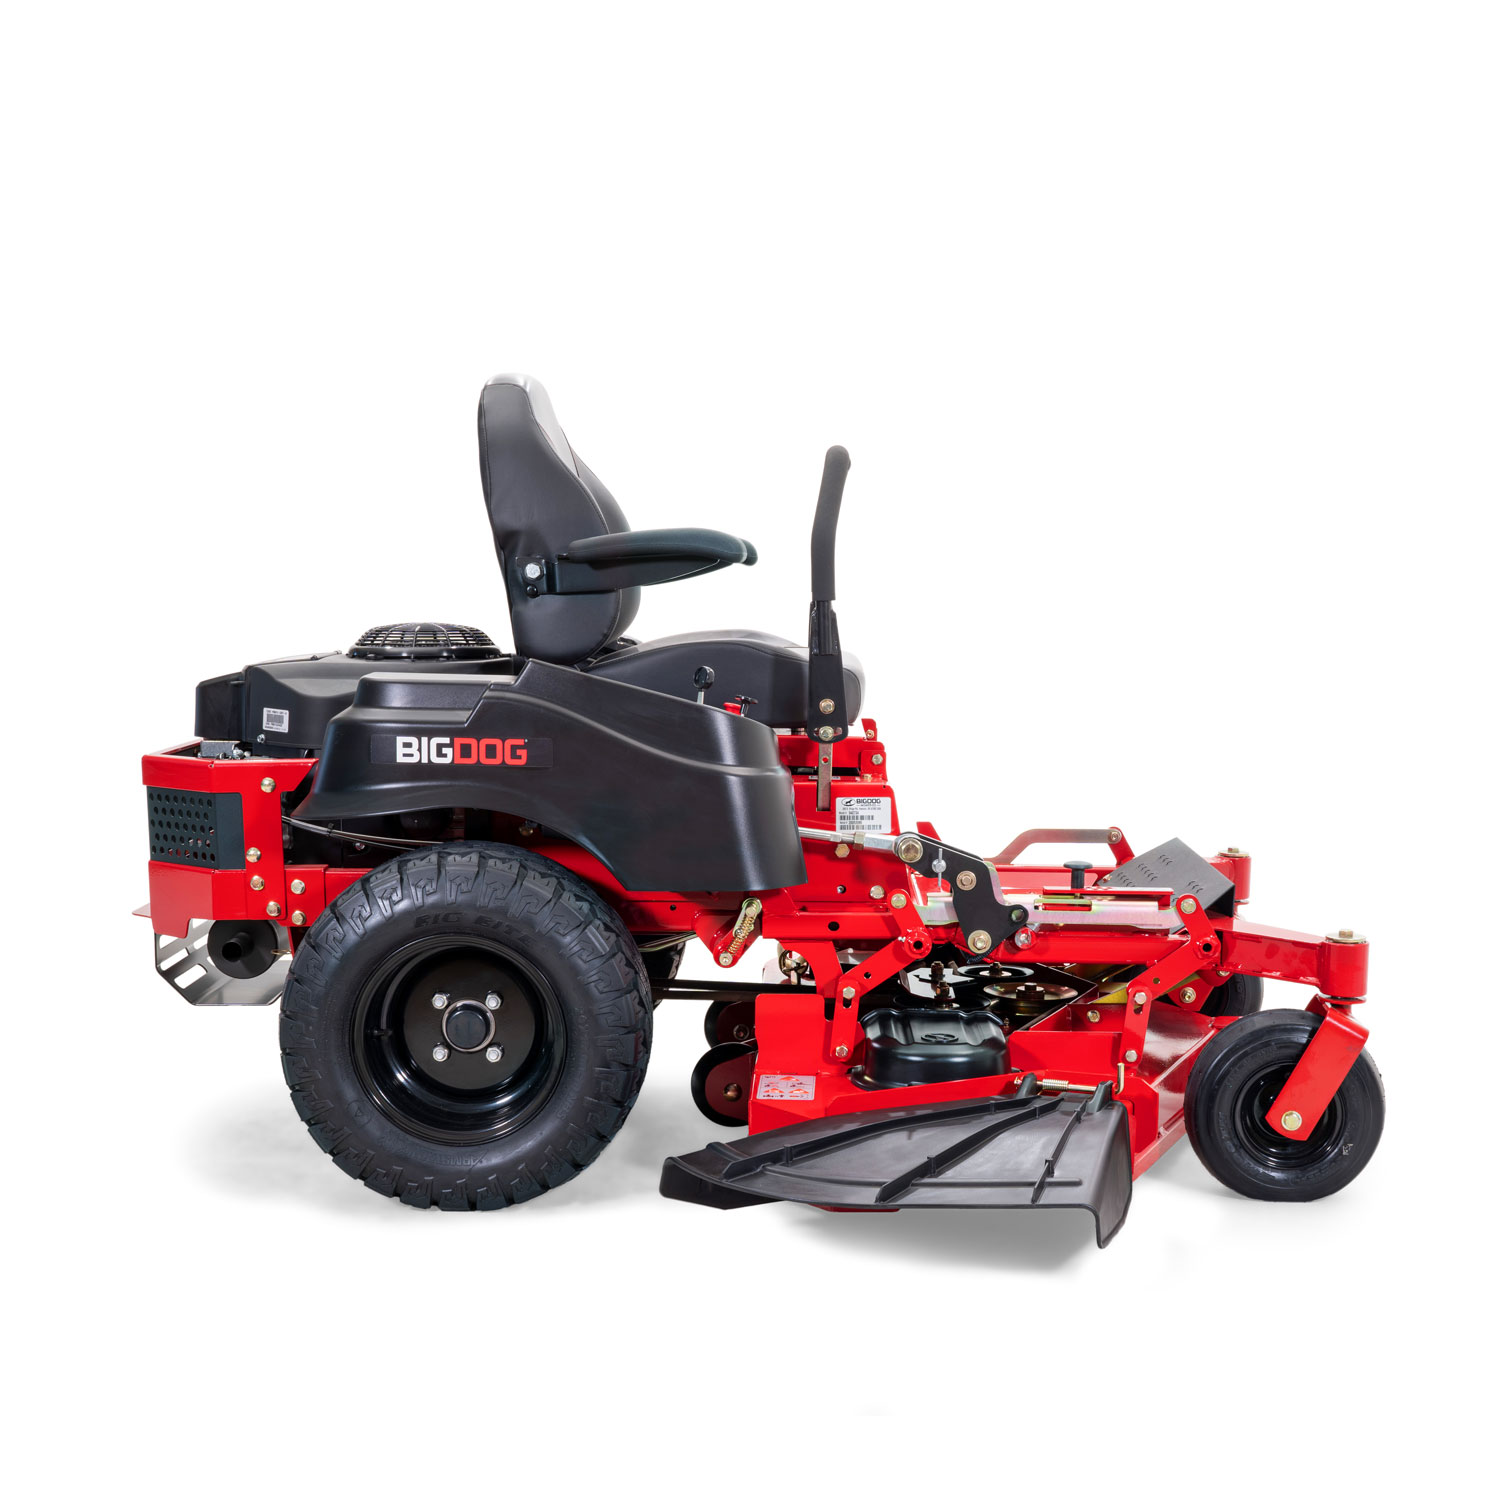 Side view of a red zero-turn mower with the discharge chute shown